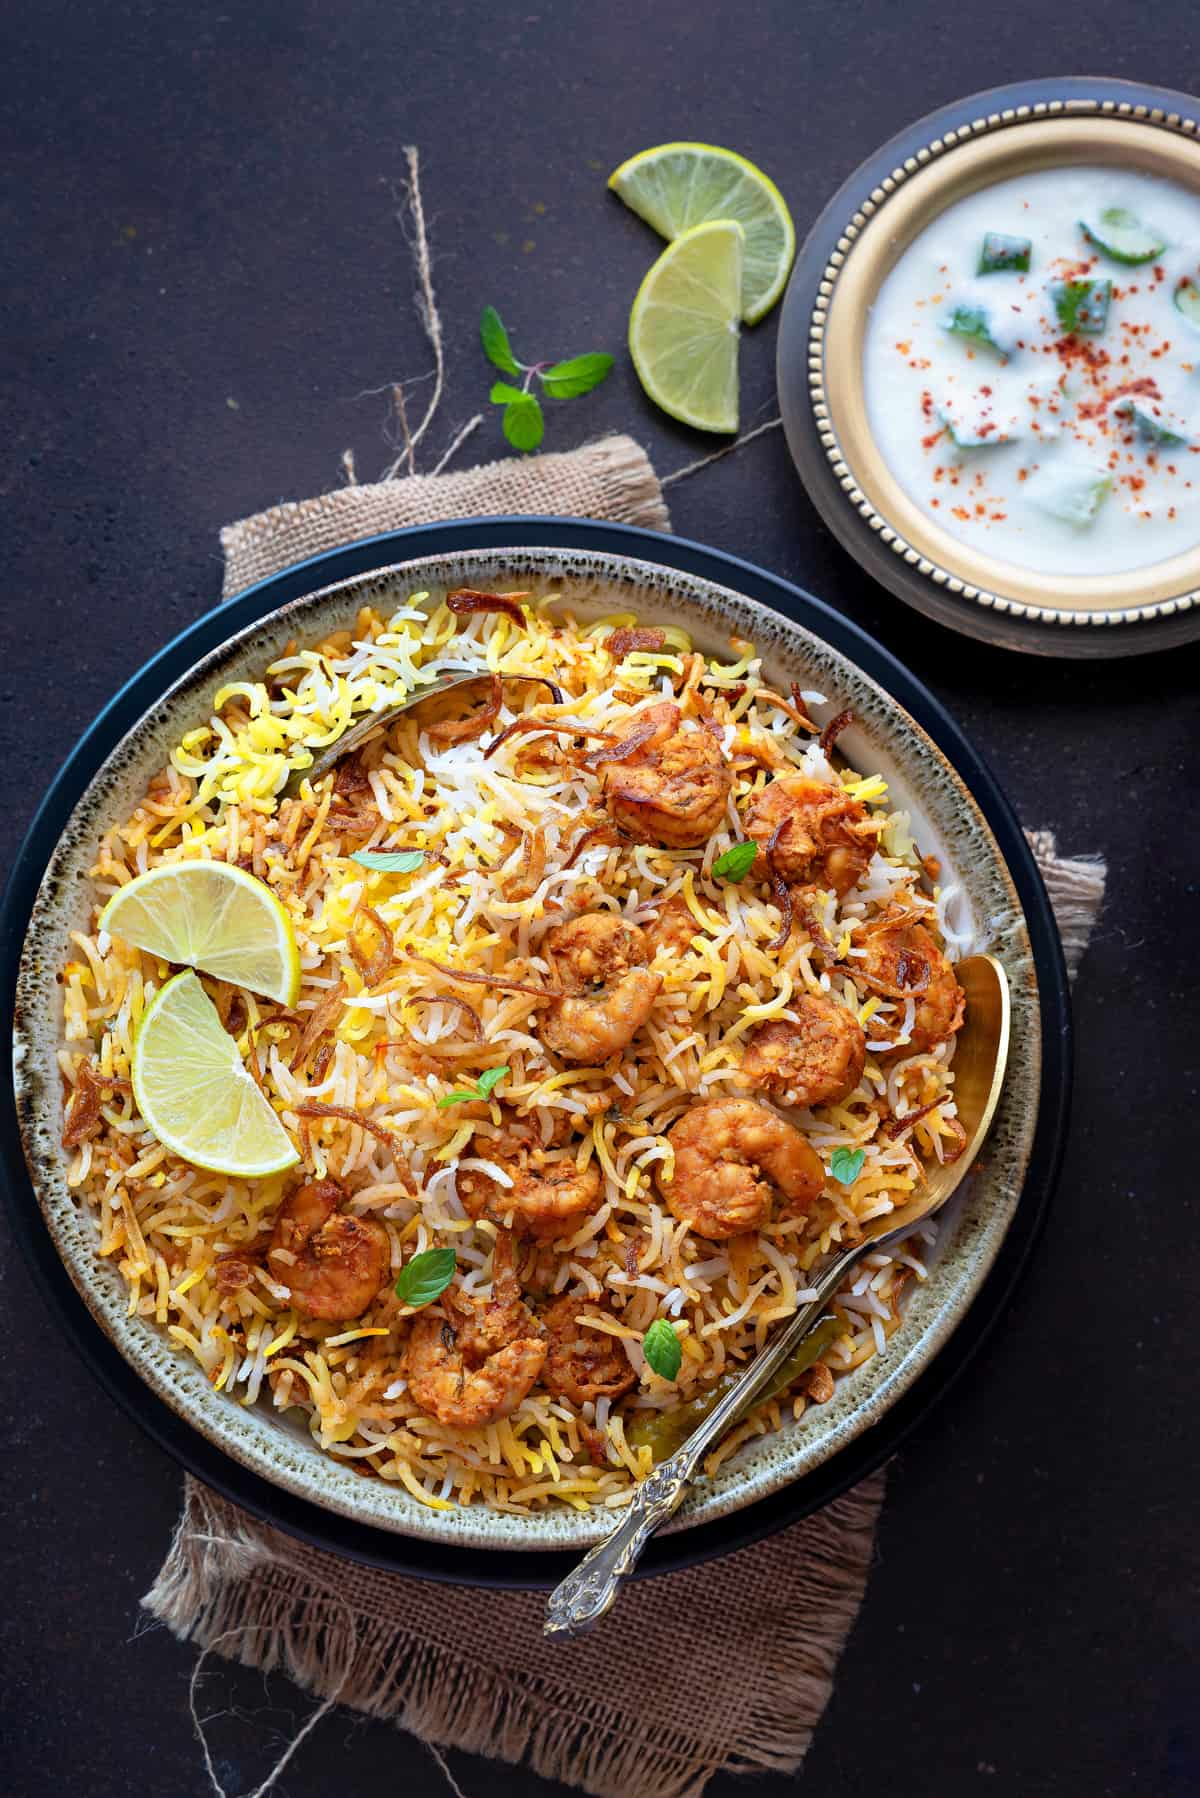 Overhead shot of prawn biryani in bowl with a spoon and yogurt raita on the side.